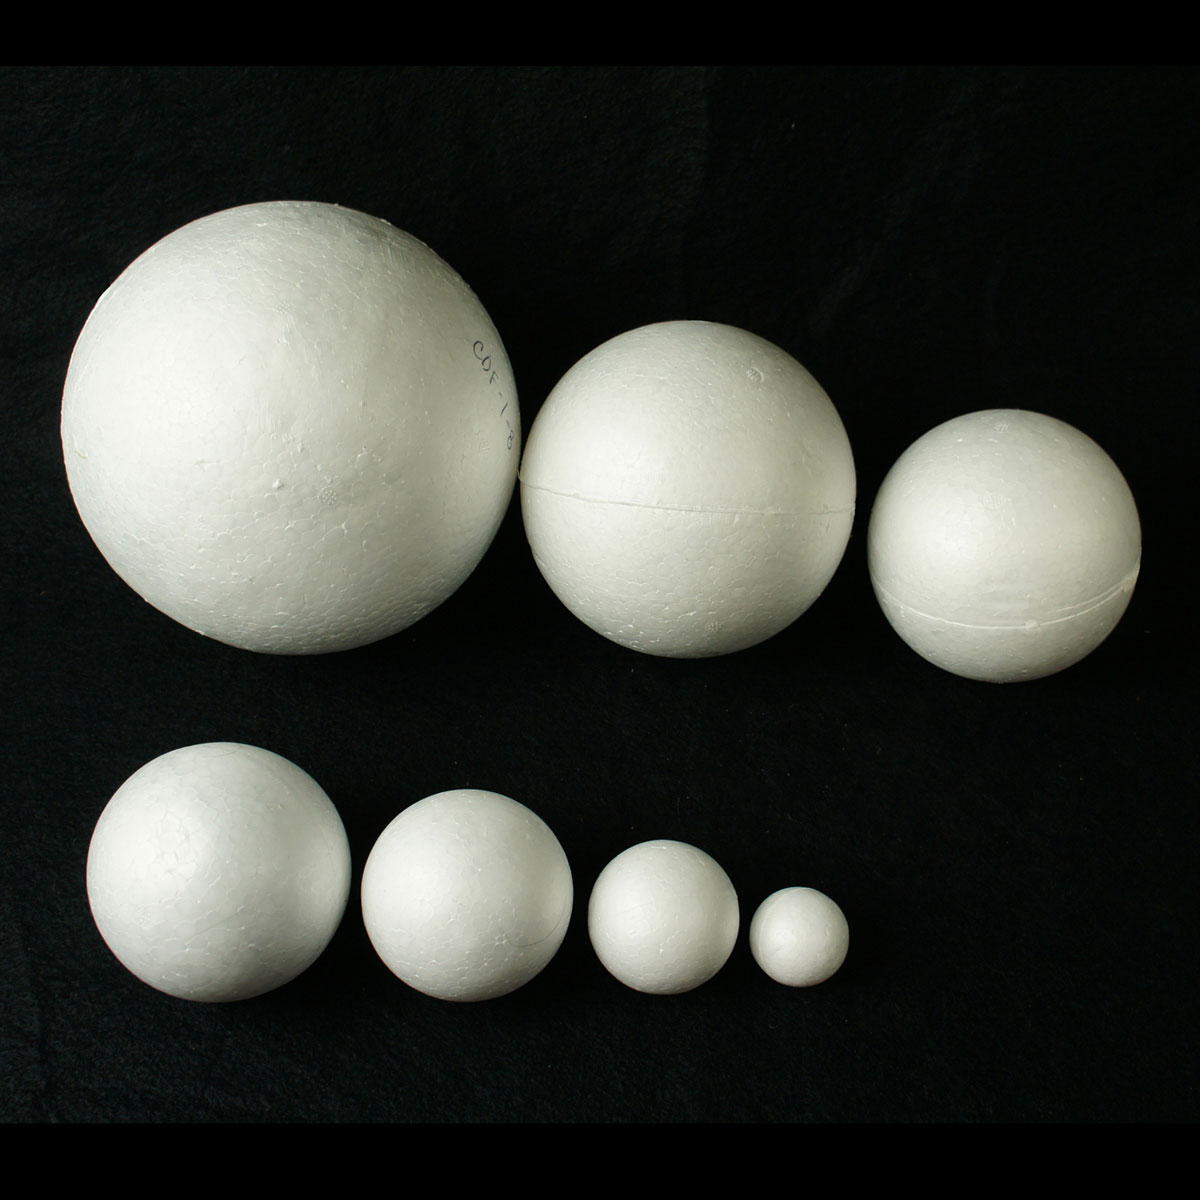 Foam ball craft - 8 Inch Foam Balls For Science Projects Parties Weddings Or Events